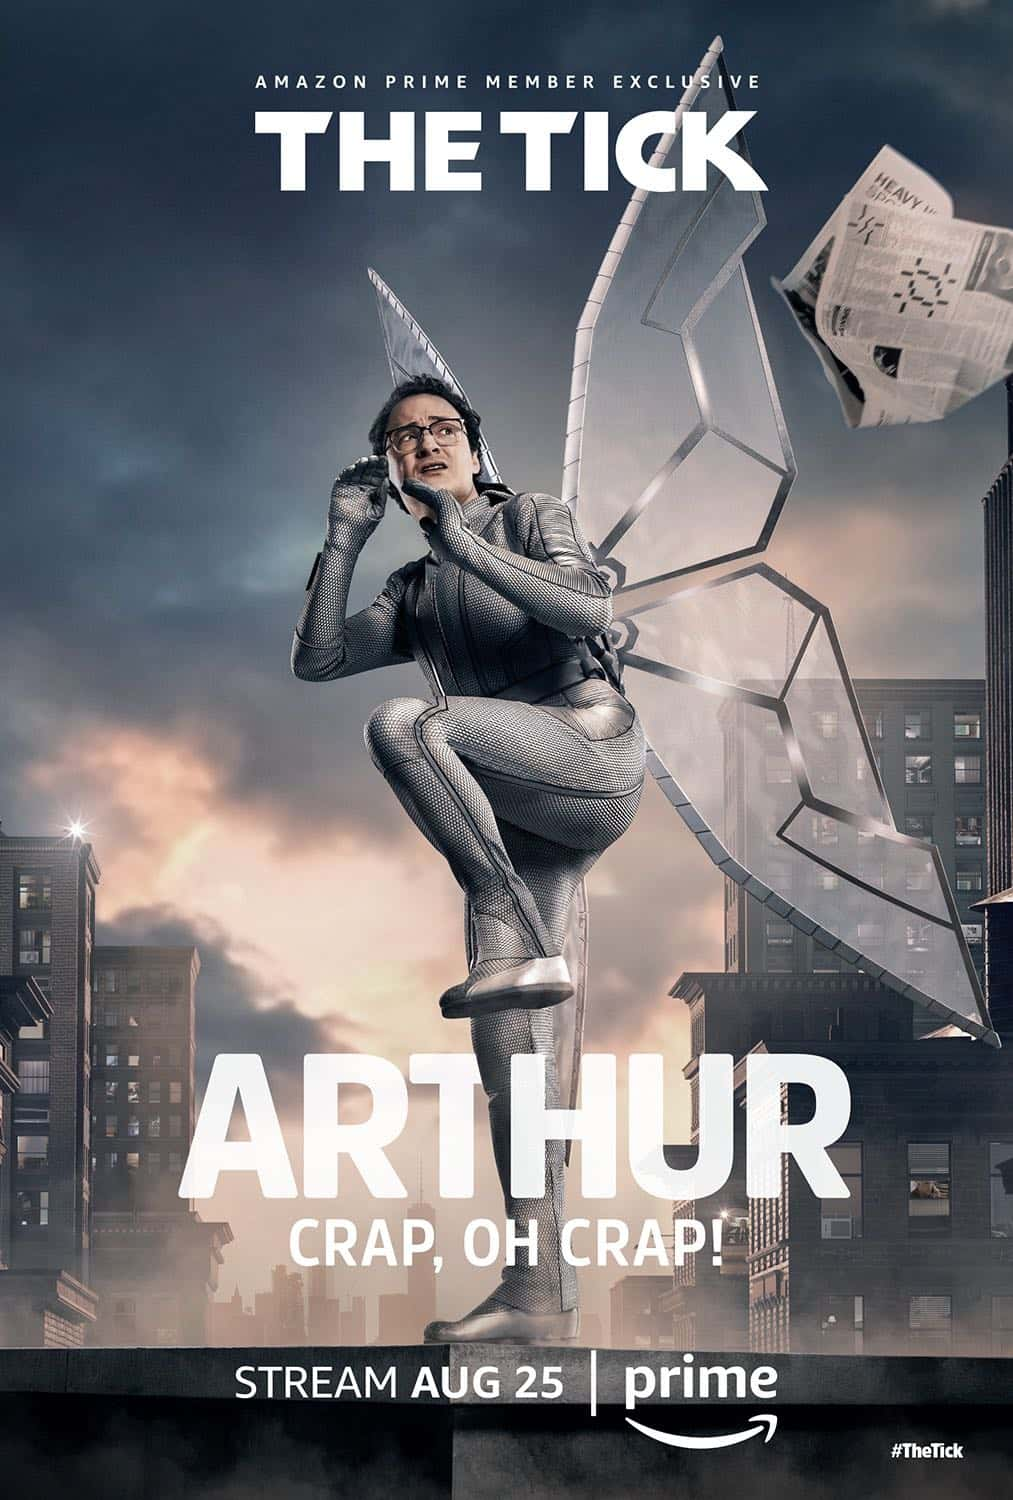 The-Tick-Poster-Arthur